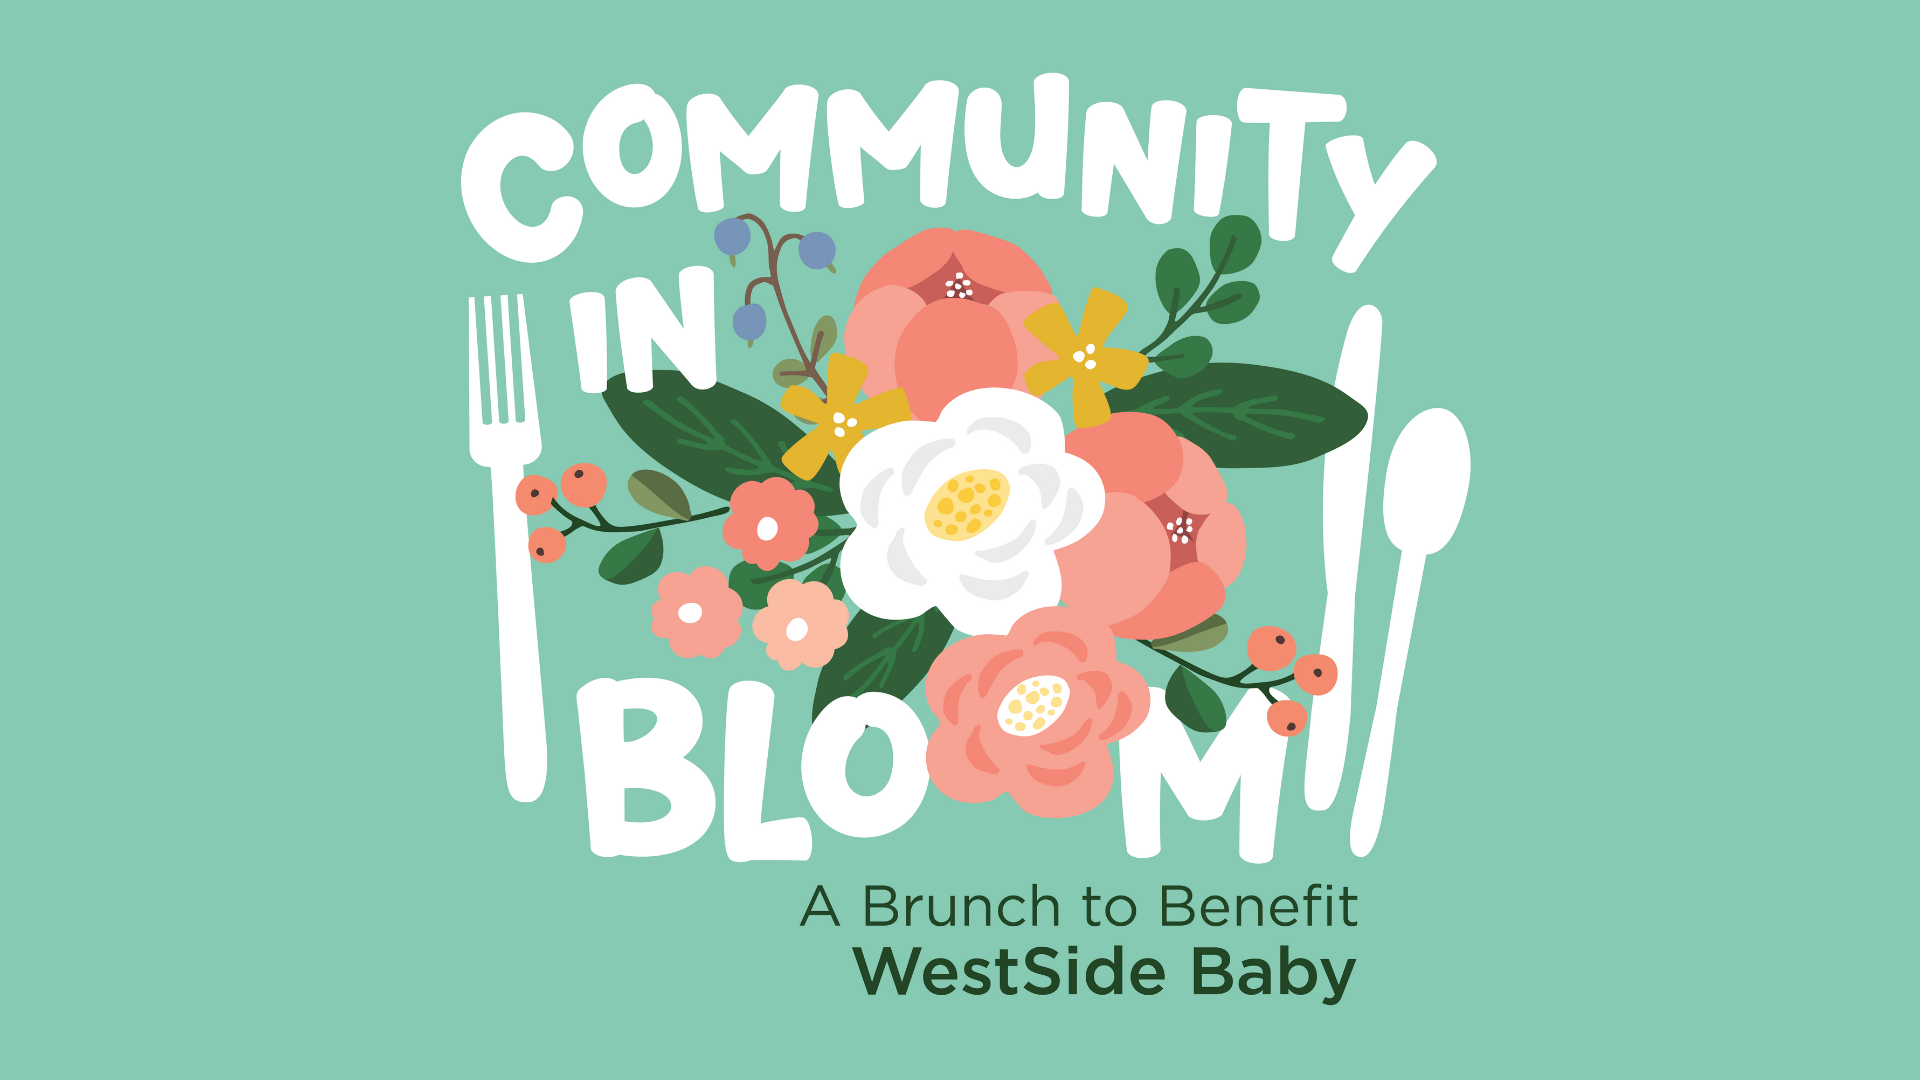 Community in Bloom - A Brunch to Benefit WestSide Baby fundraiser event logo with bouquet of flowers and silverware.